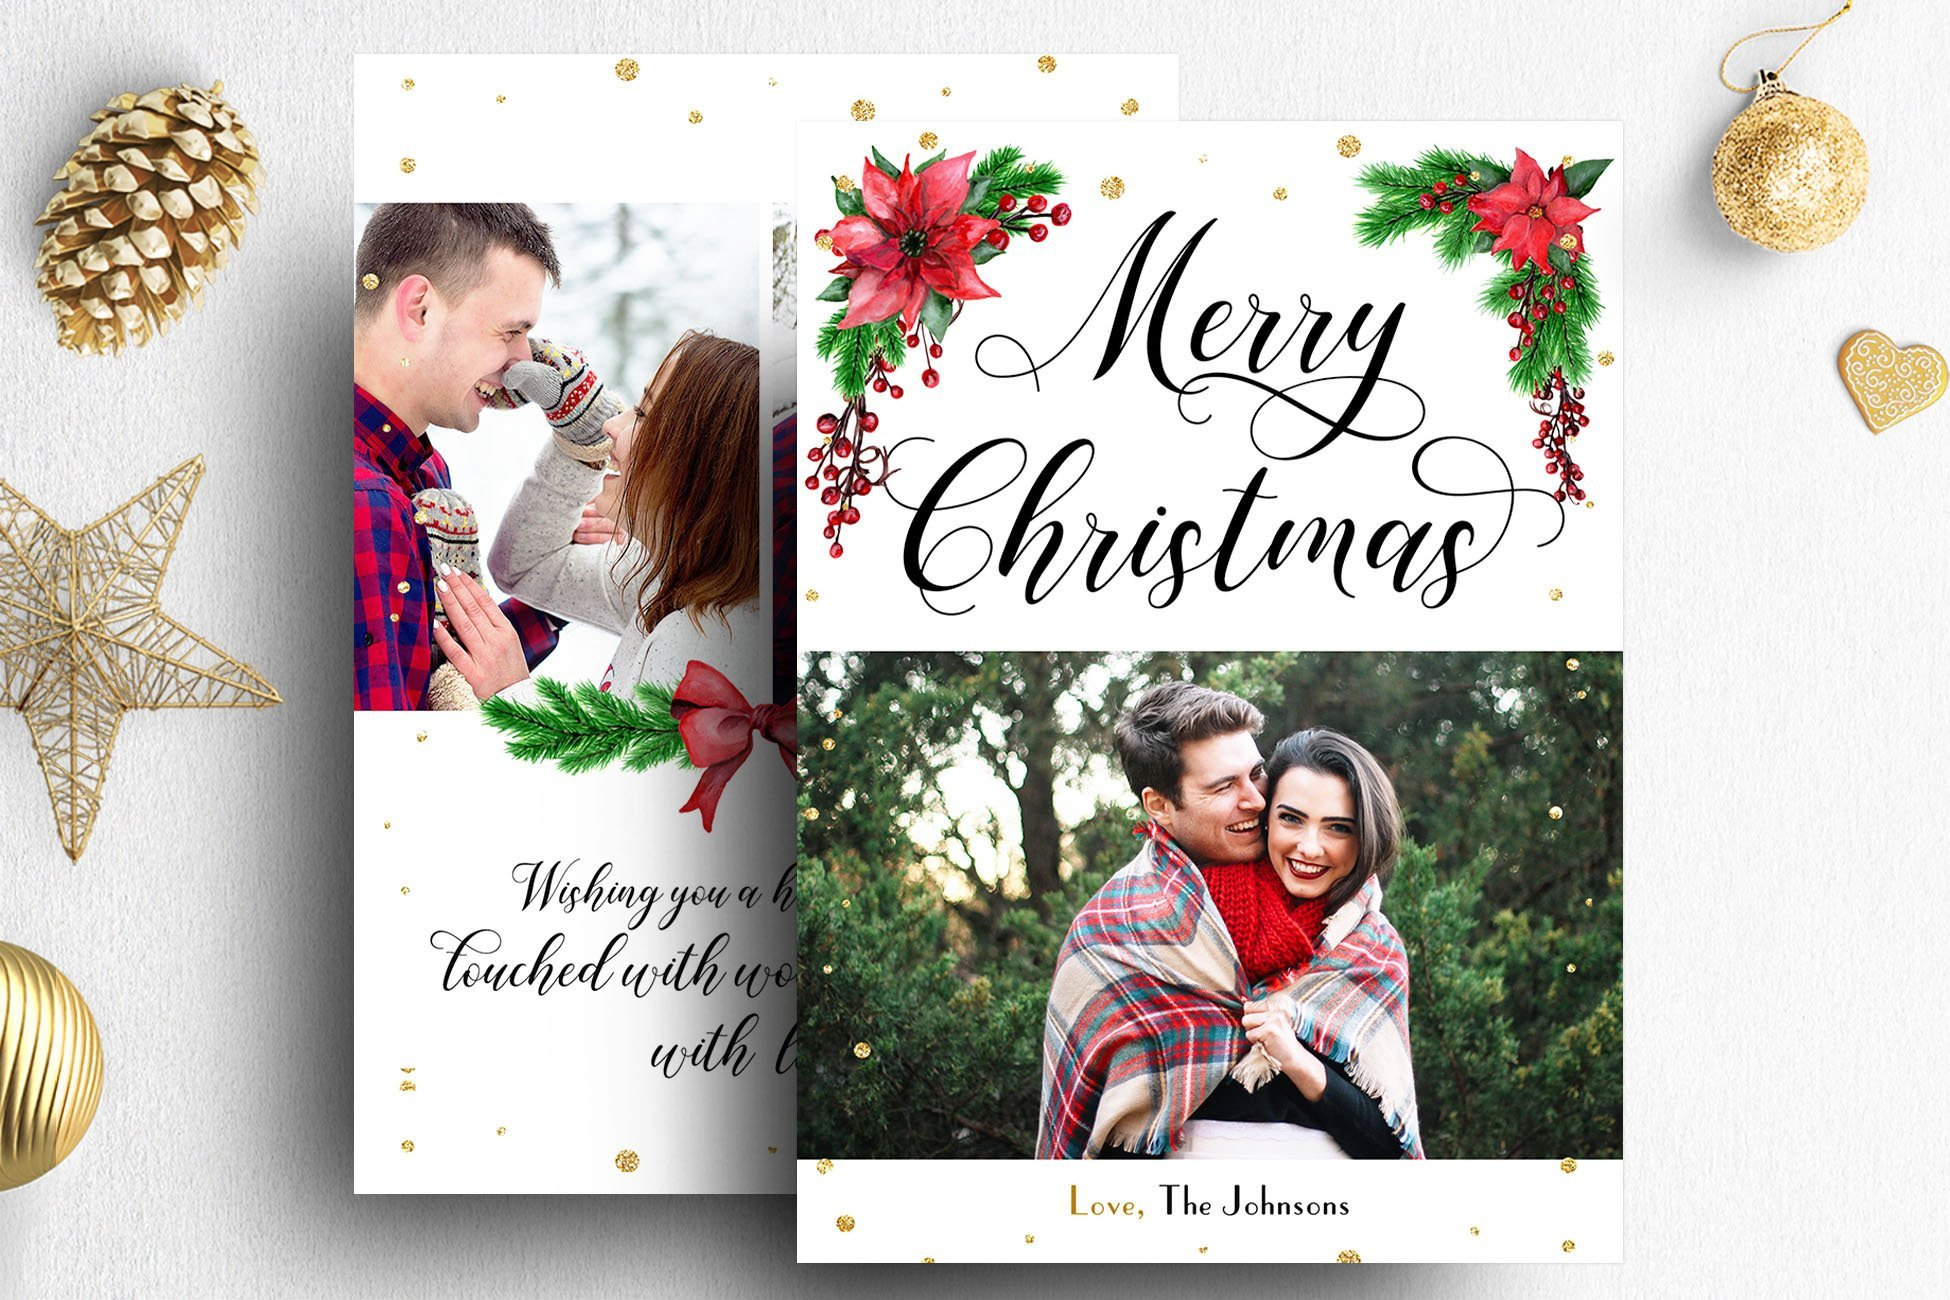 Christmas Card Photoshop Templates Christmas Card Shop Template Card Templates